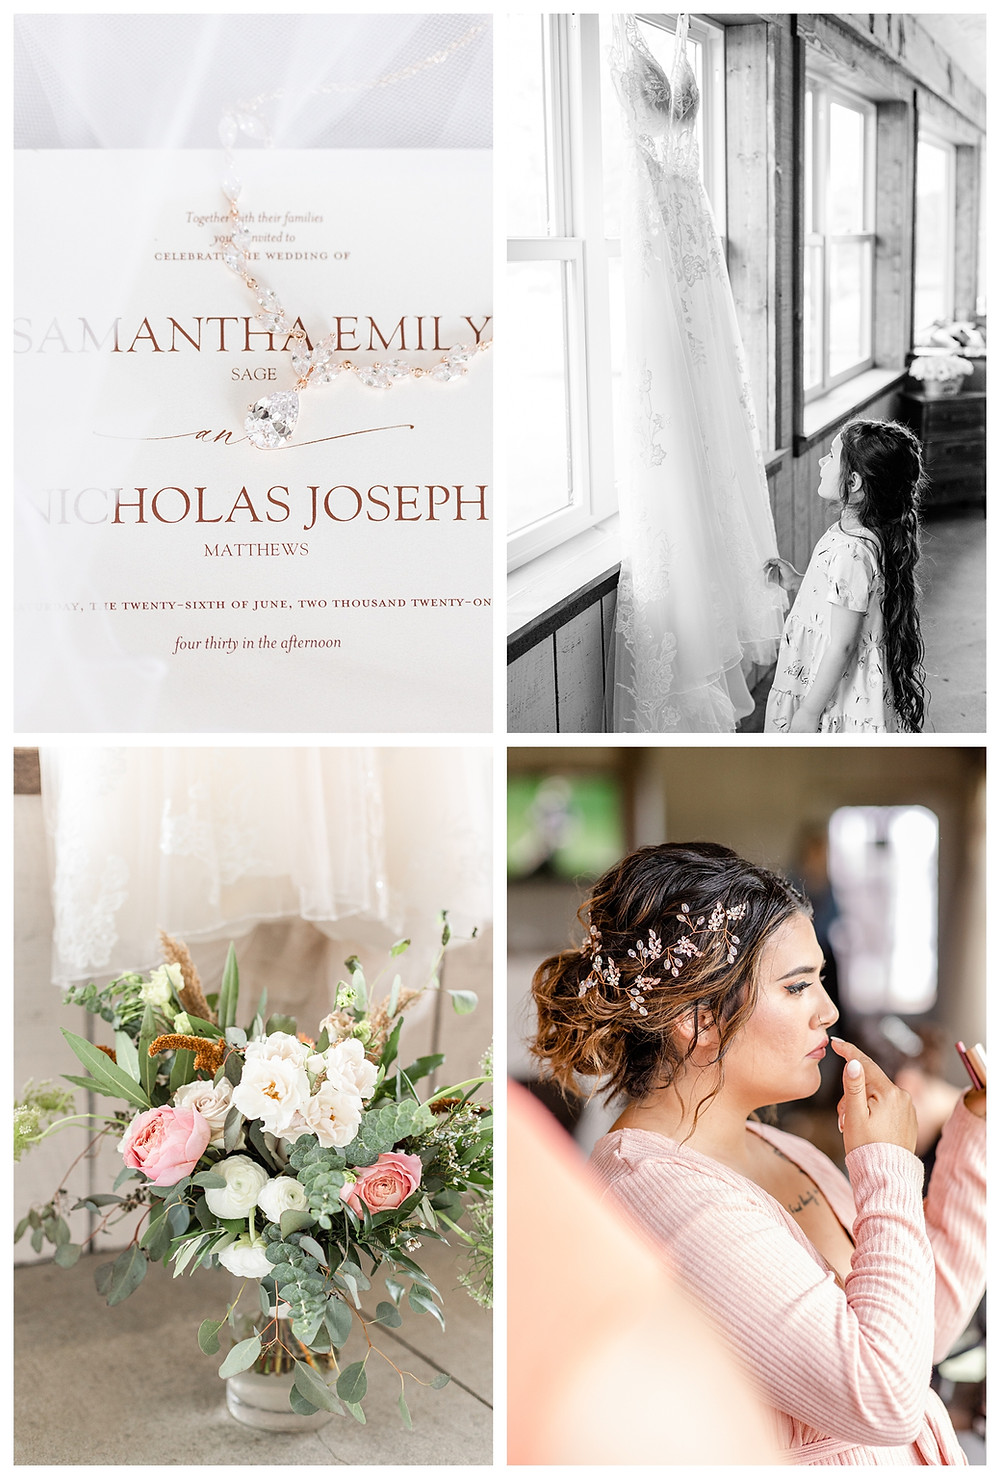 Josh and Andrea wedding photography husband and wife photographer team michigan pictures photo shoot farm barn spring bride and groom farm barn invitation suite dress florals